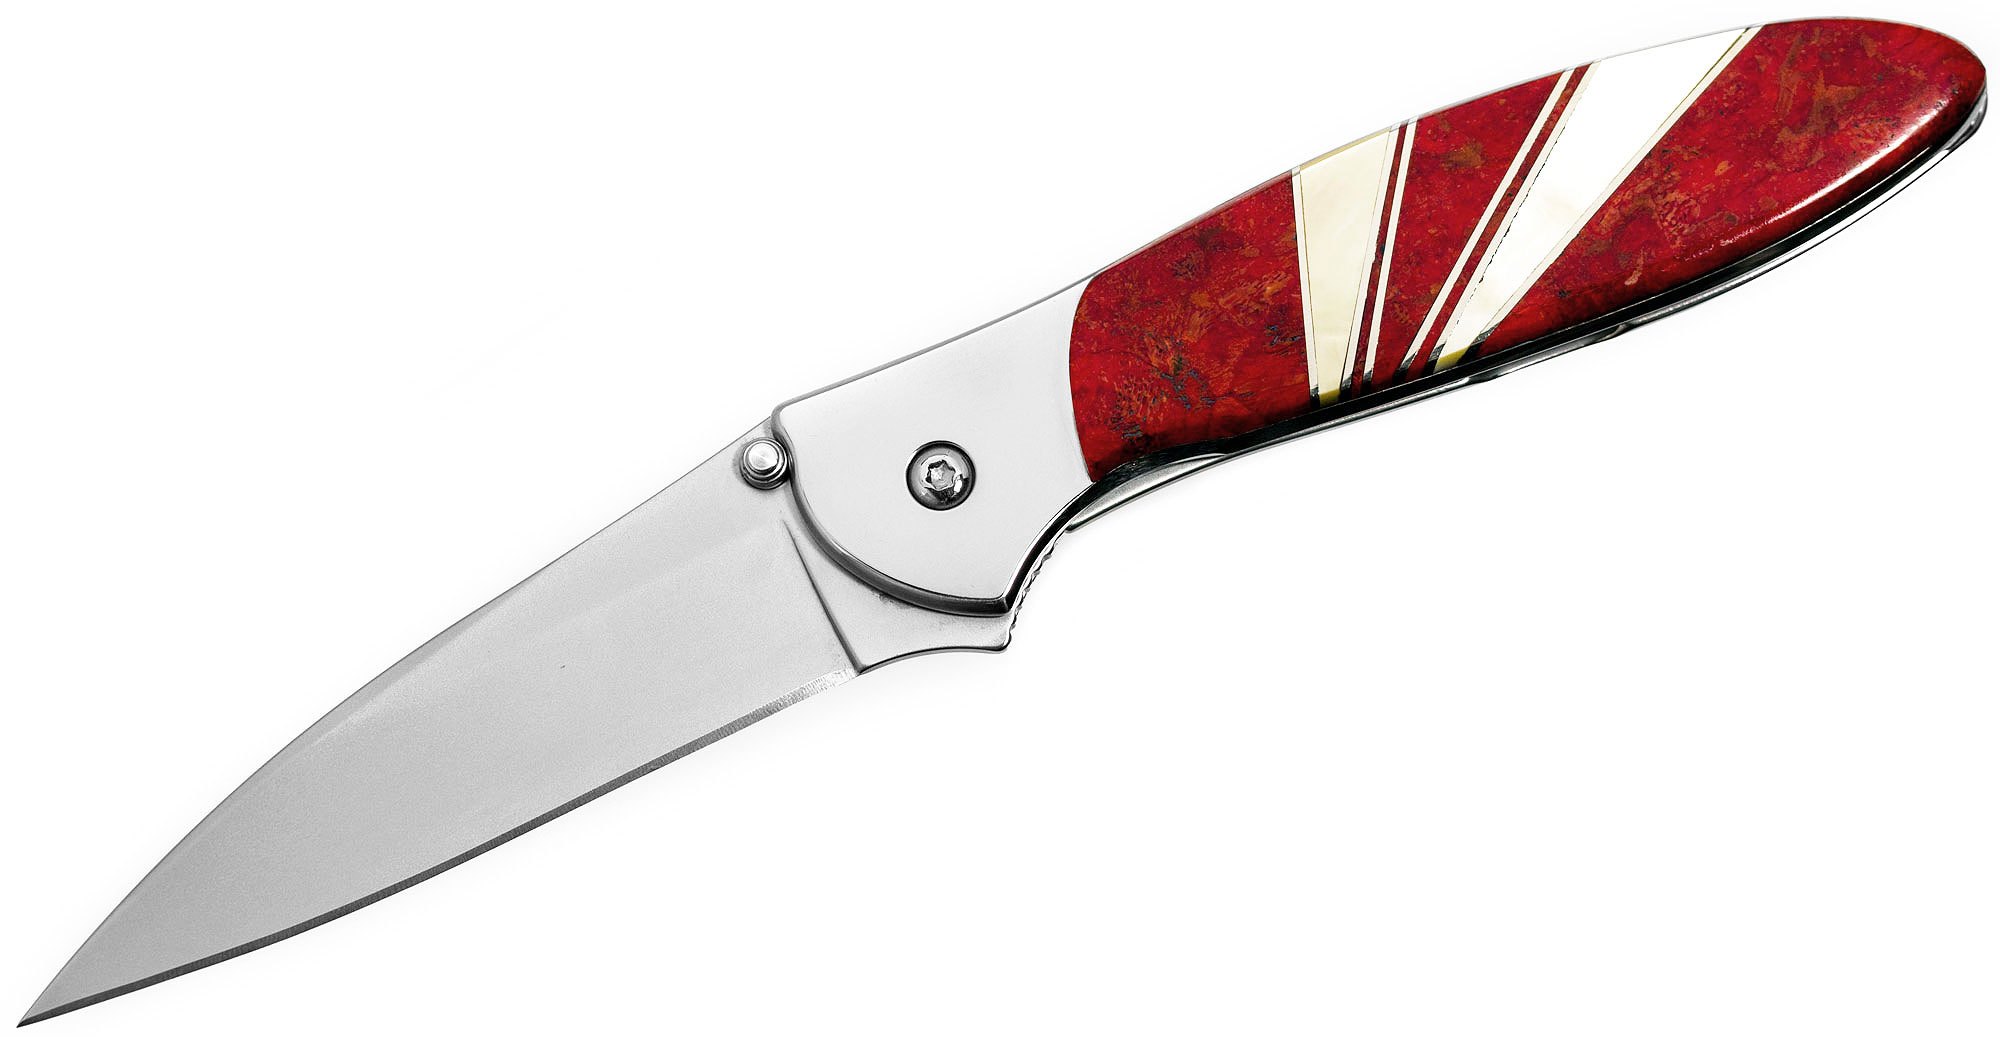 Kershaw 1660JC Ken Onion Leek Assisted Flipper Knife 3 inch Blade, Red Coral and Mother of Pearl Jewelry Collection